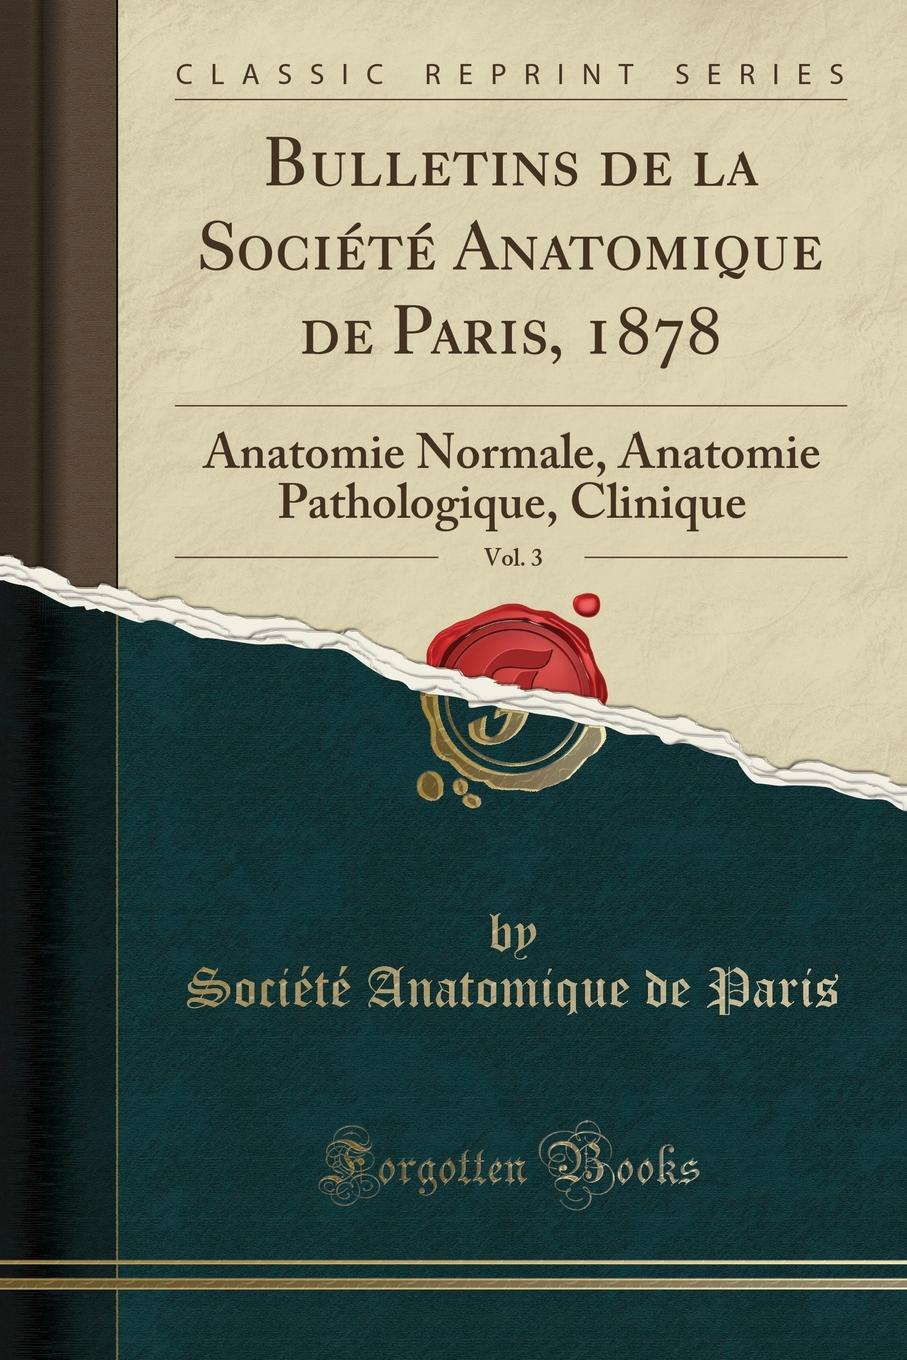 Société Anatomique de Paris Bulletins de la Societe Anatomique de Paris, 1878, Vol. 3. Anatomie Normale, Anatomie Pathologique, Clinique (Classic Reprint)